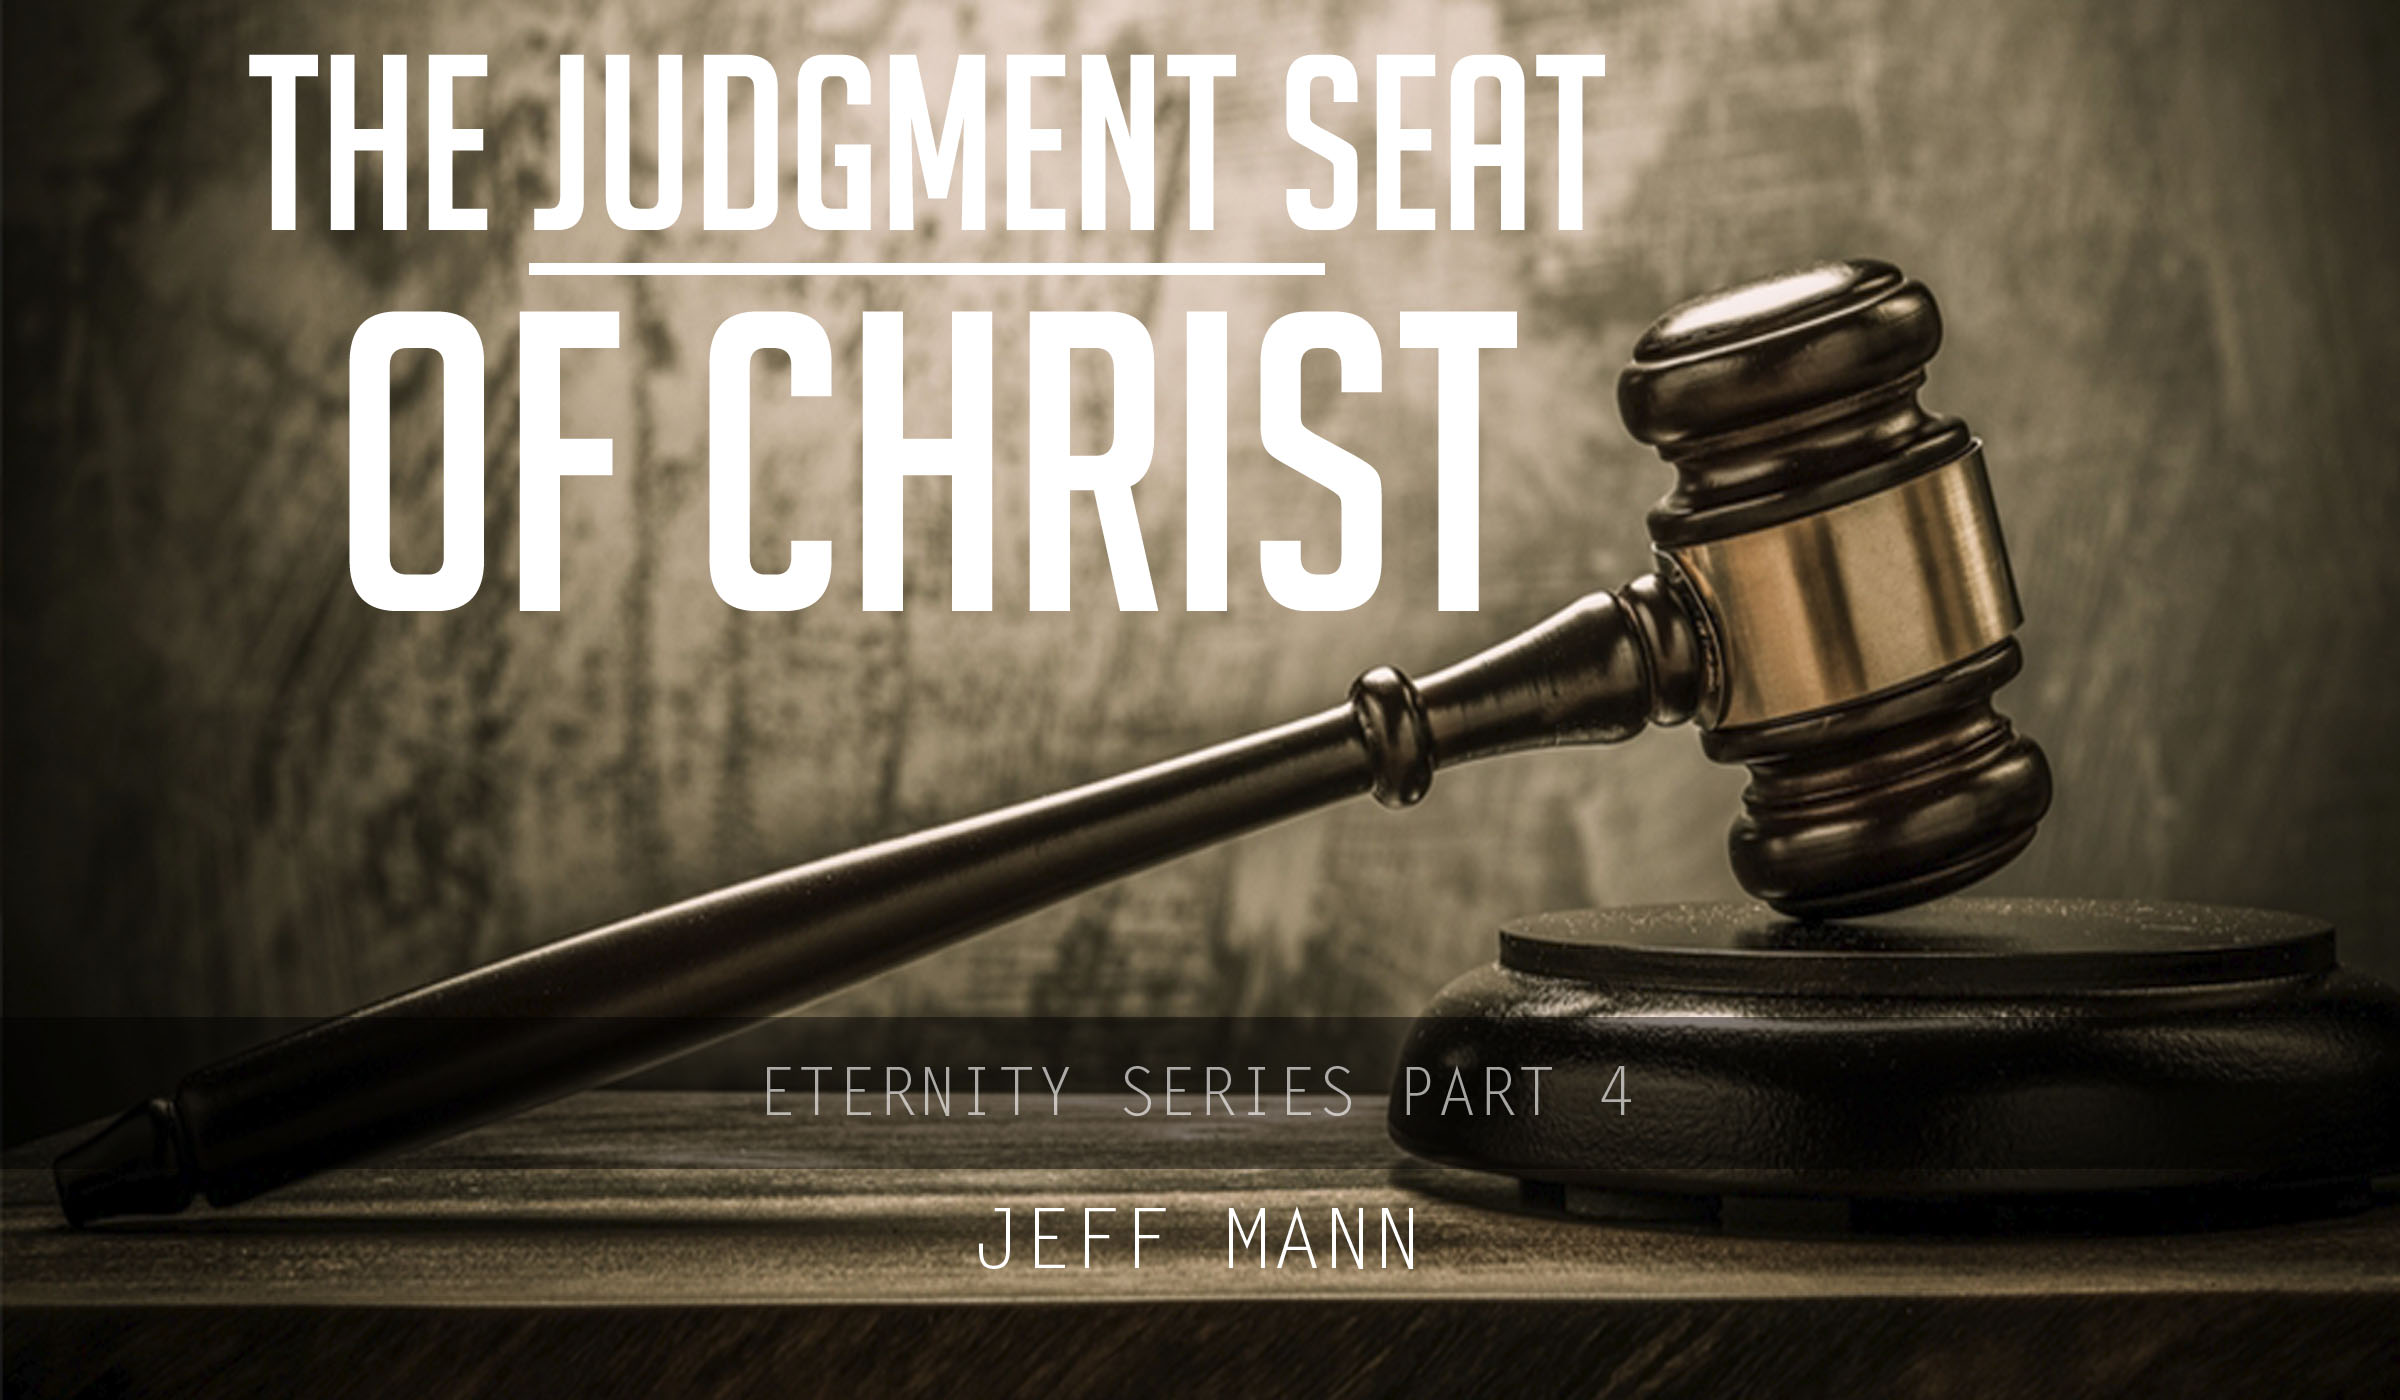 The Judgment Seat of Christ – Eternity Series Part 4